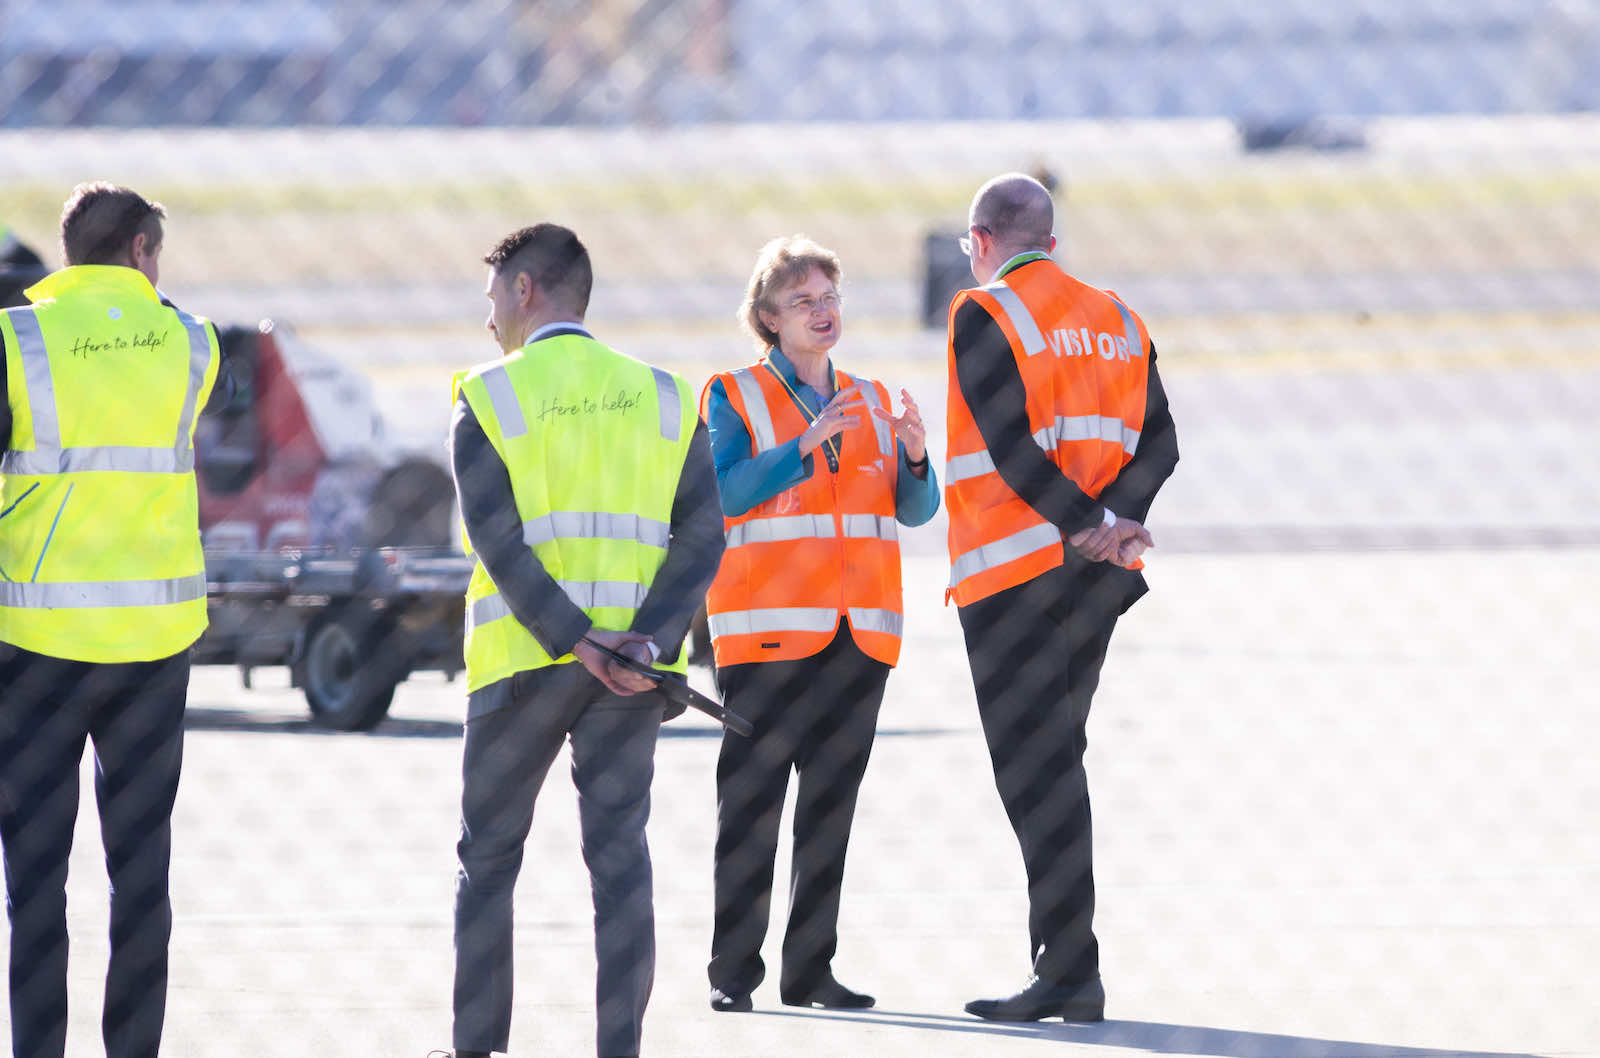 Frances Adamson, then secretary of the Department of Foreign Affairs and Trade, at Canberra Airport waiting for Covid-19 repatriation flights in May 2020 (Rohan Thomson/Getty Images)